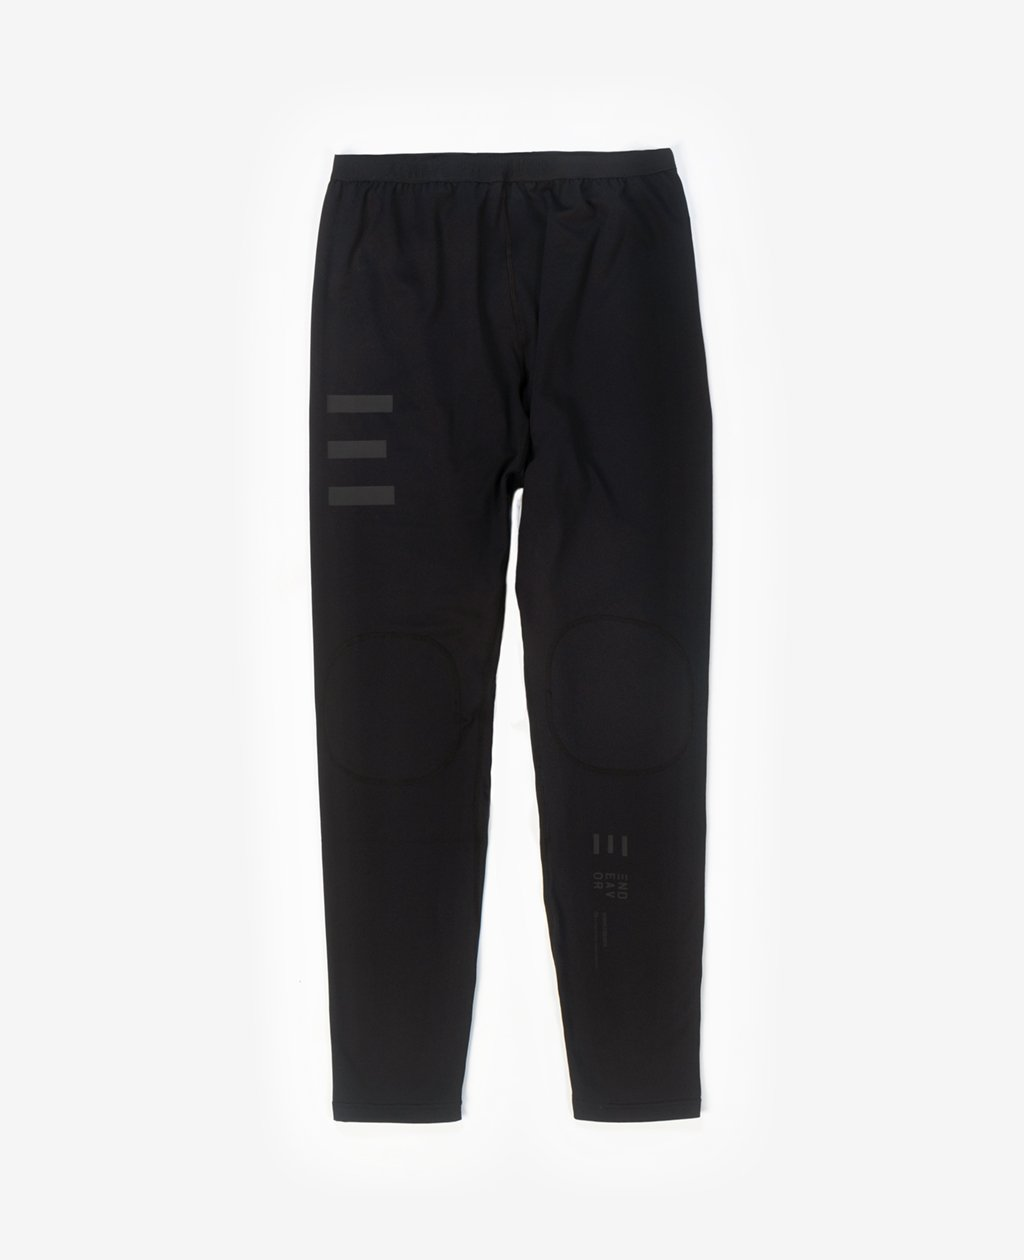 Endeavor Scout Thermal Bottom